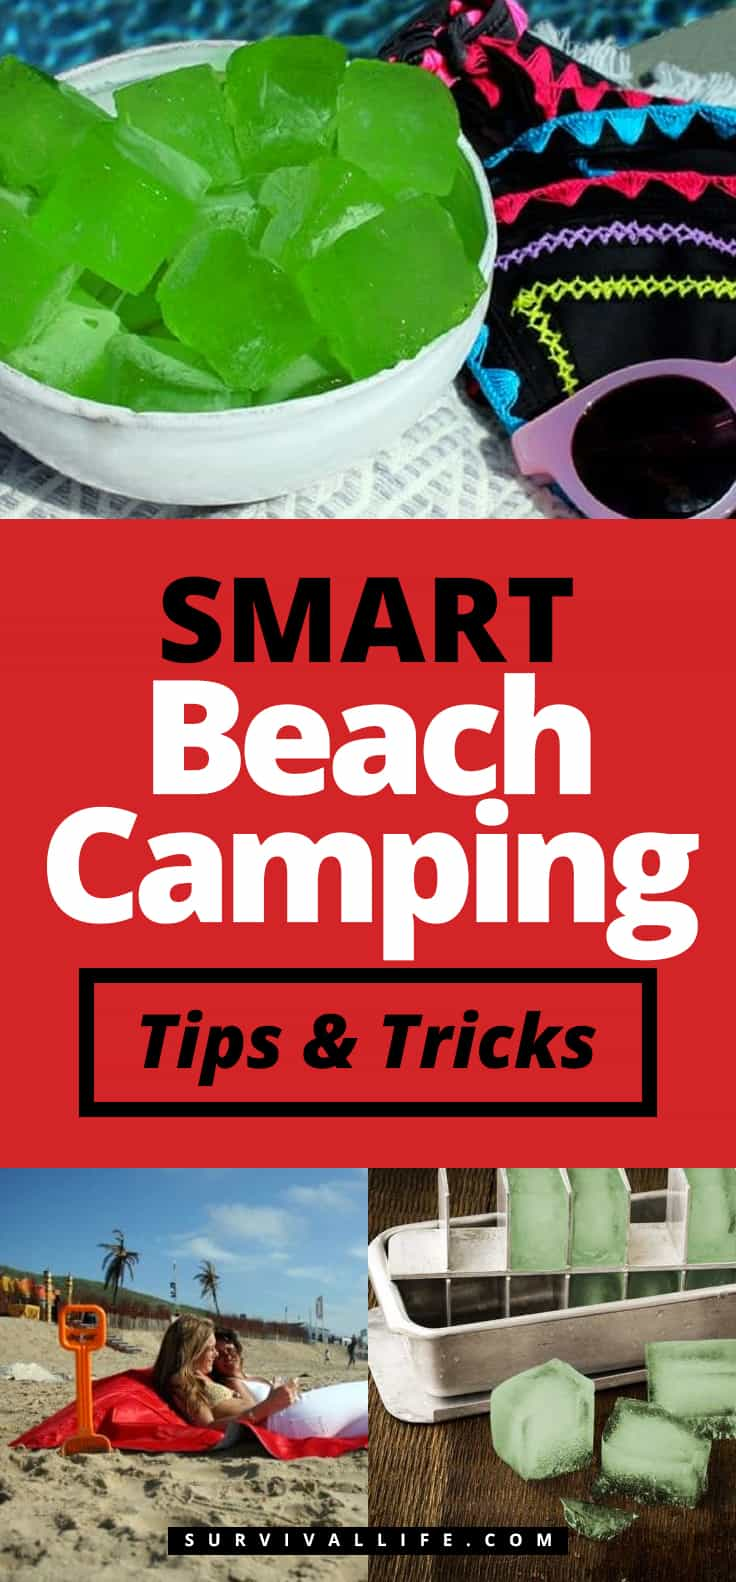 Smart Beach Camping Tips And Tricks | https://survivallife.com/beach-camping-smart-tips-tricks/